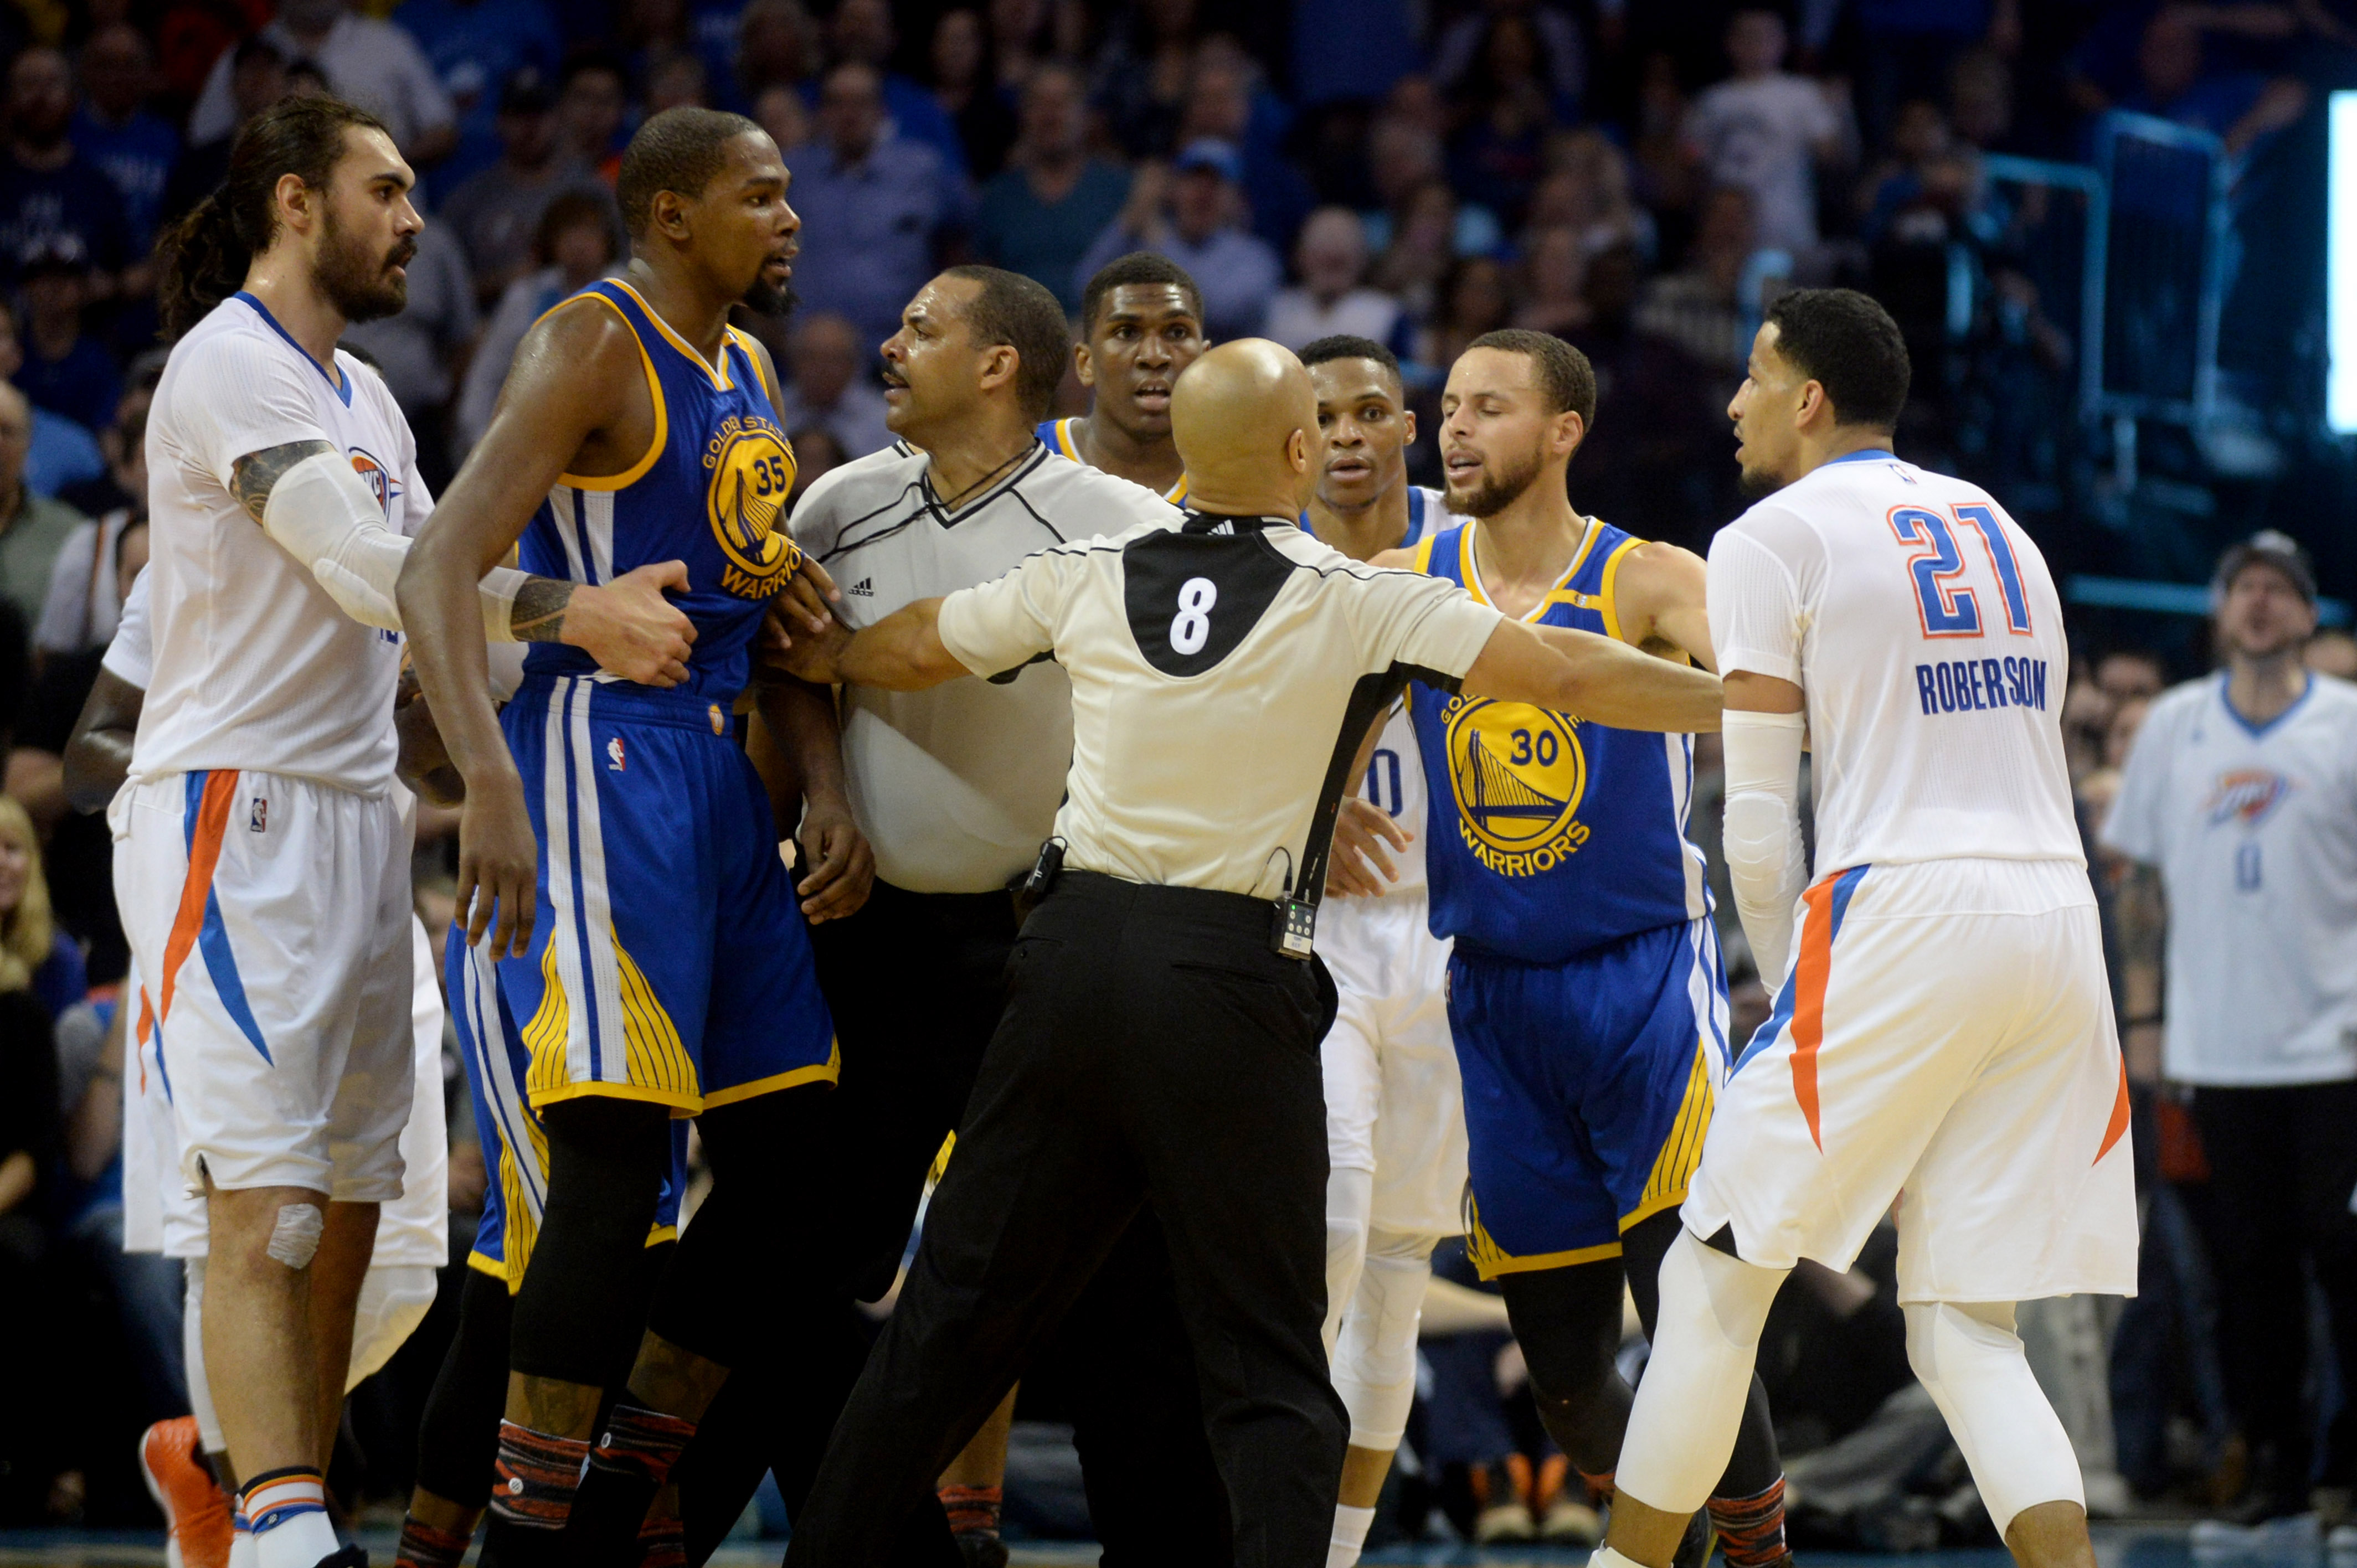 986af3fadfc1 An OKC Thunder vs. Golden State Warriors playoff round is inevitable